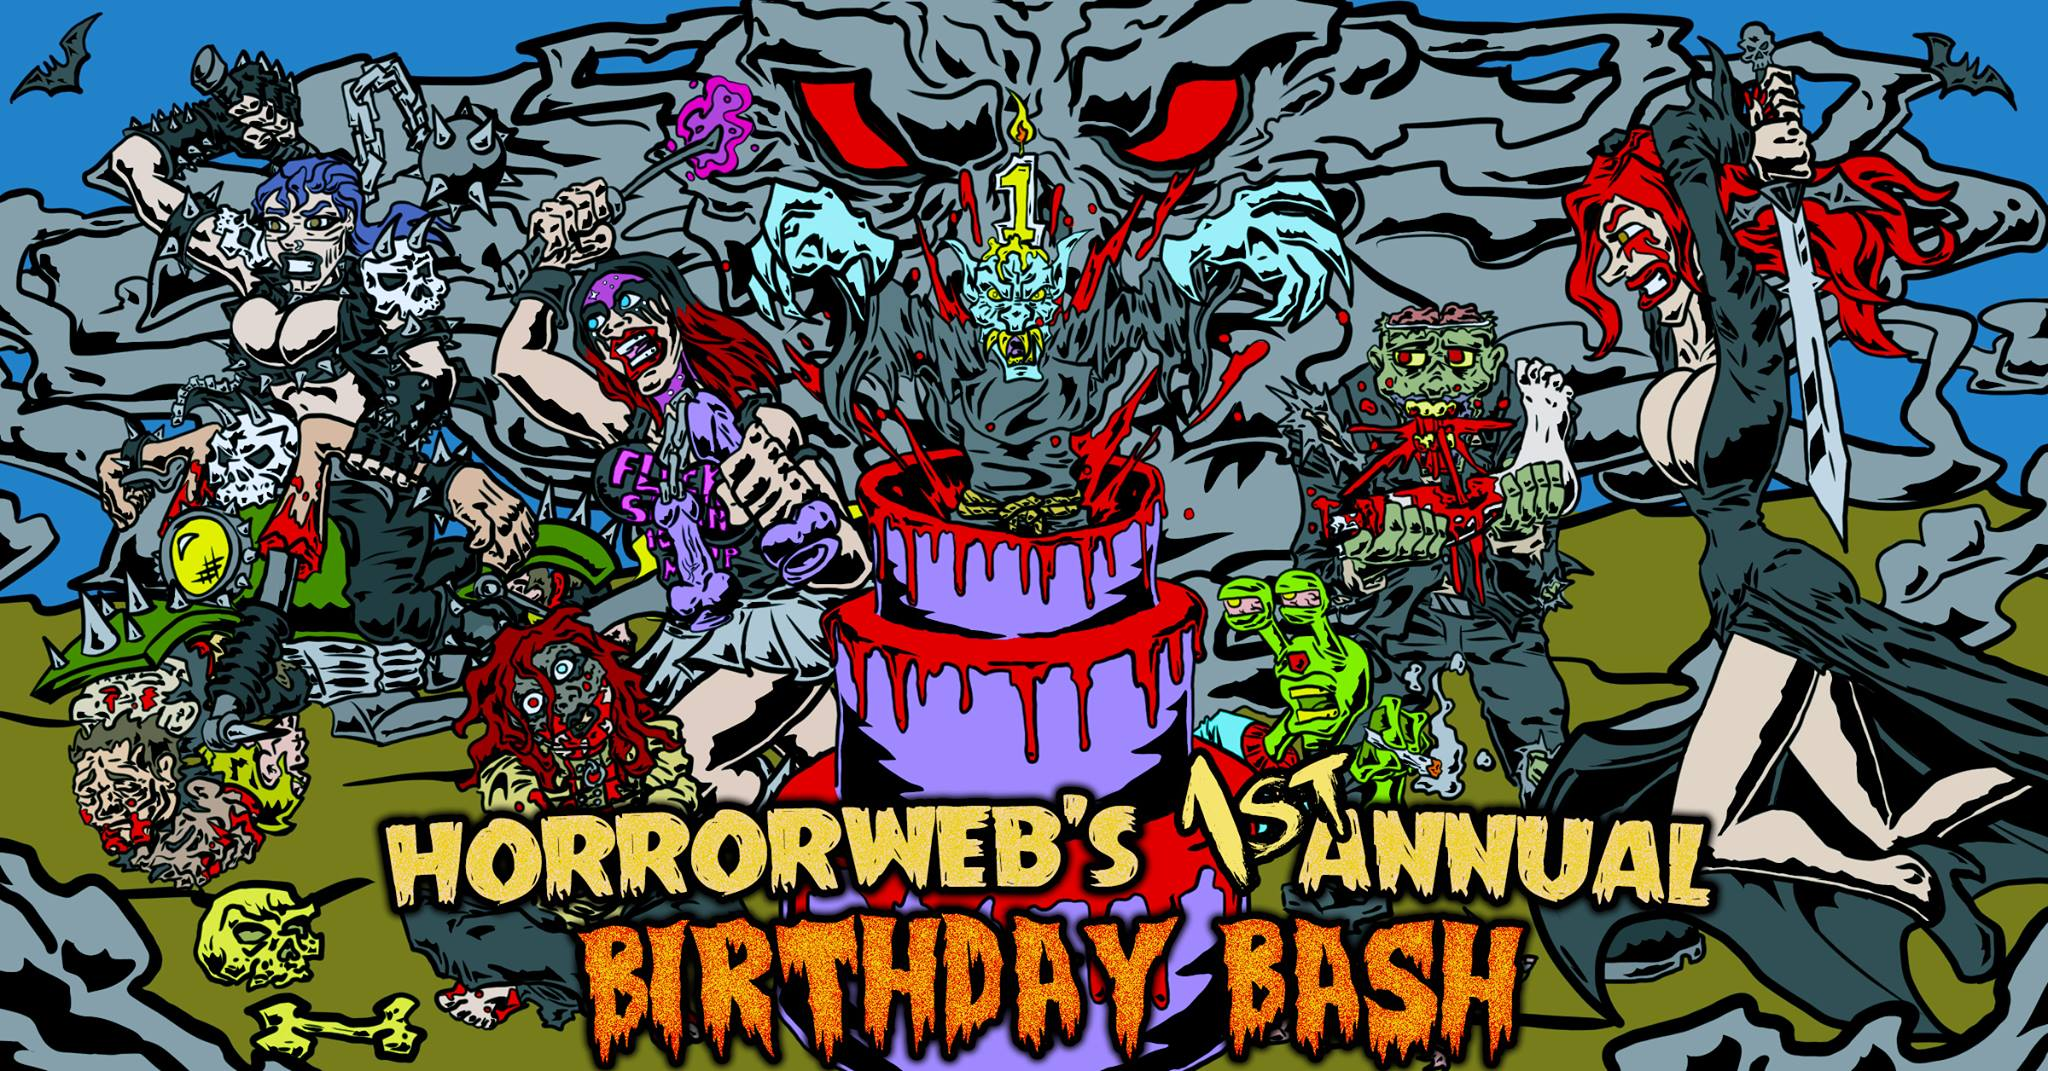 HorrorWeb's First Annual Birthday Bash!